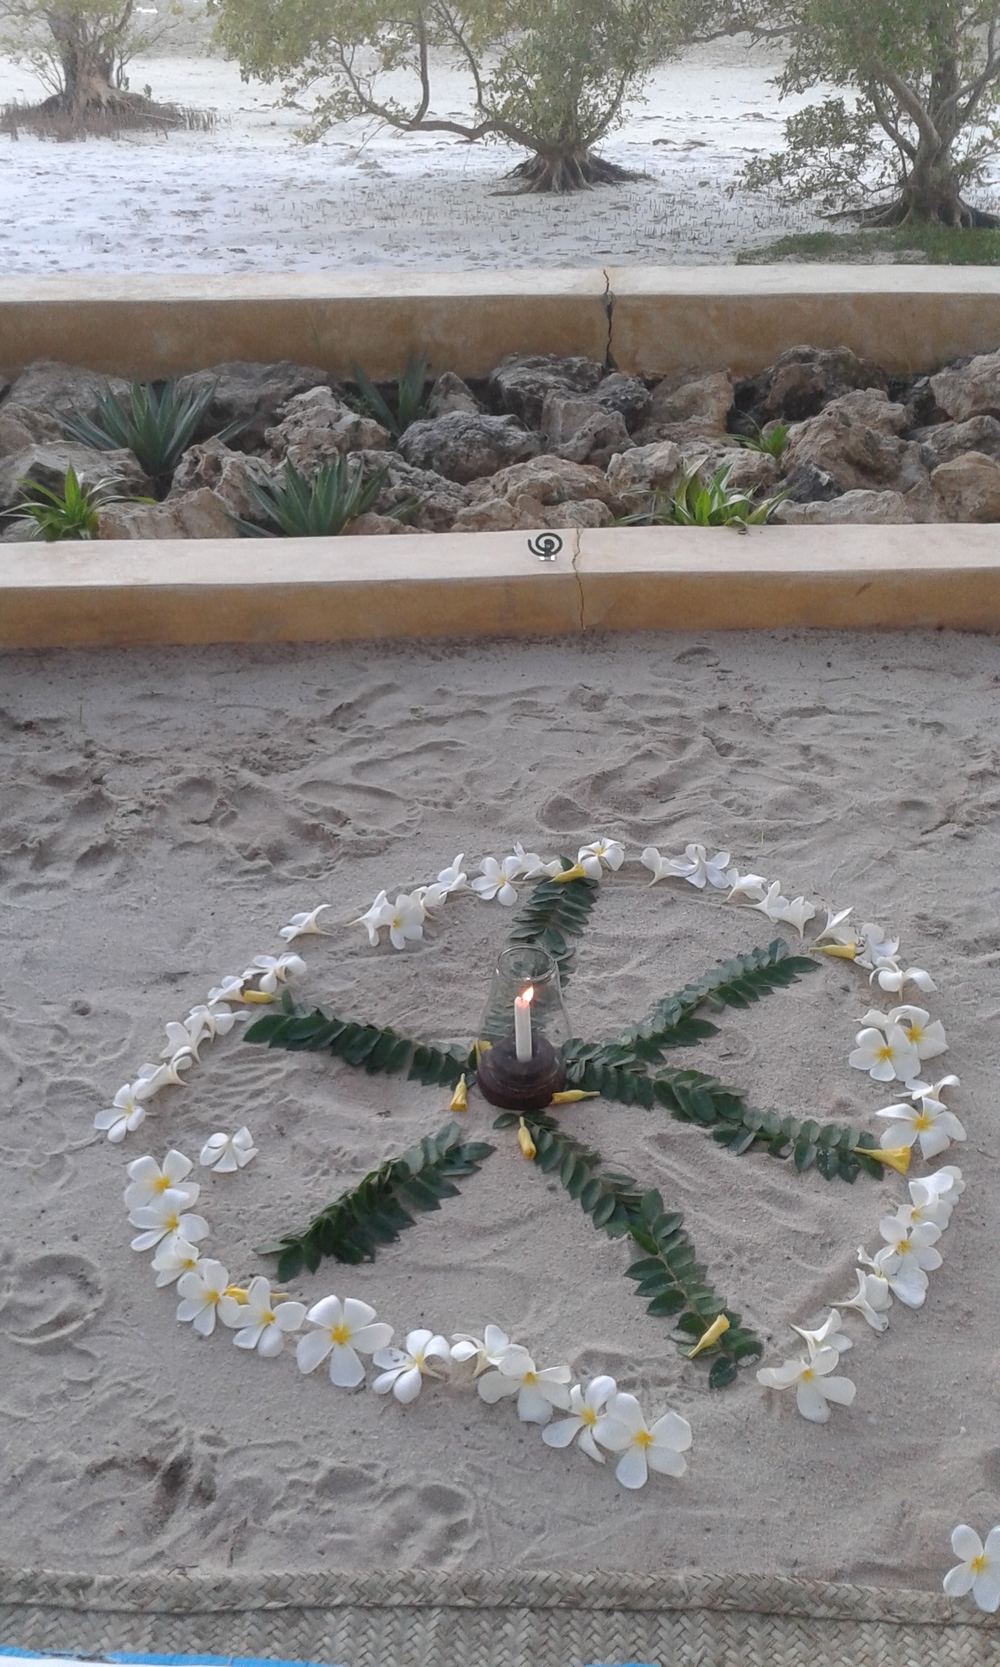 A flower mandala whisked away by the wind... a symbol of impermanence in life